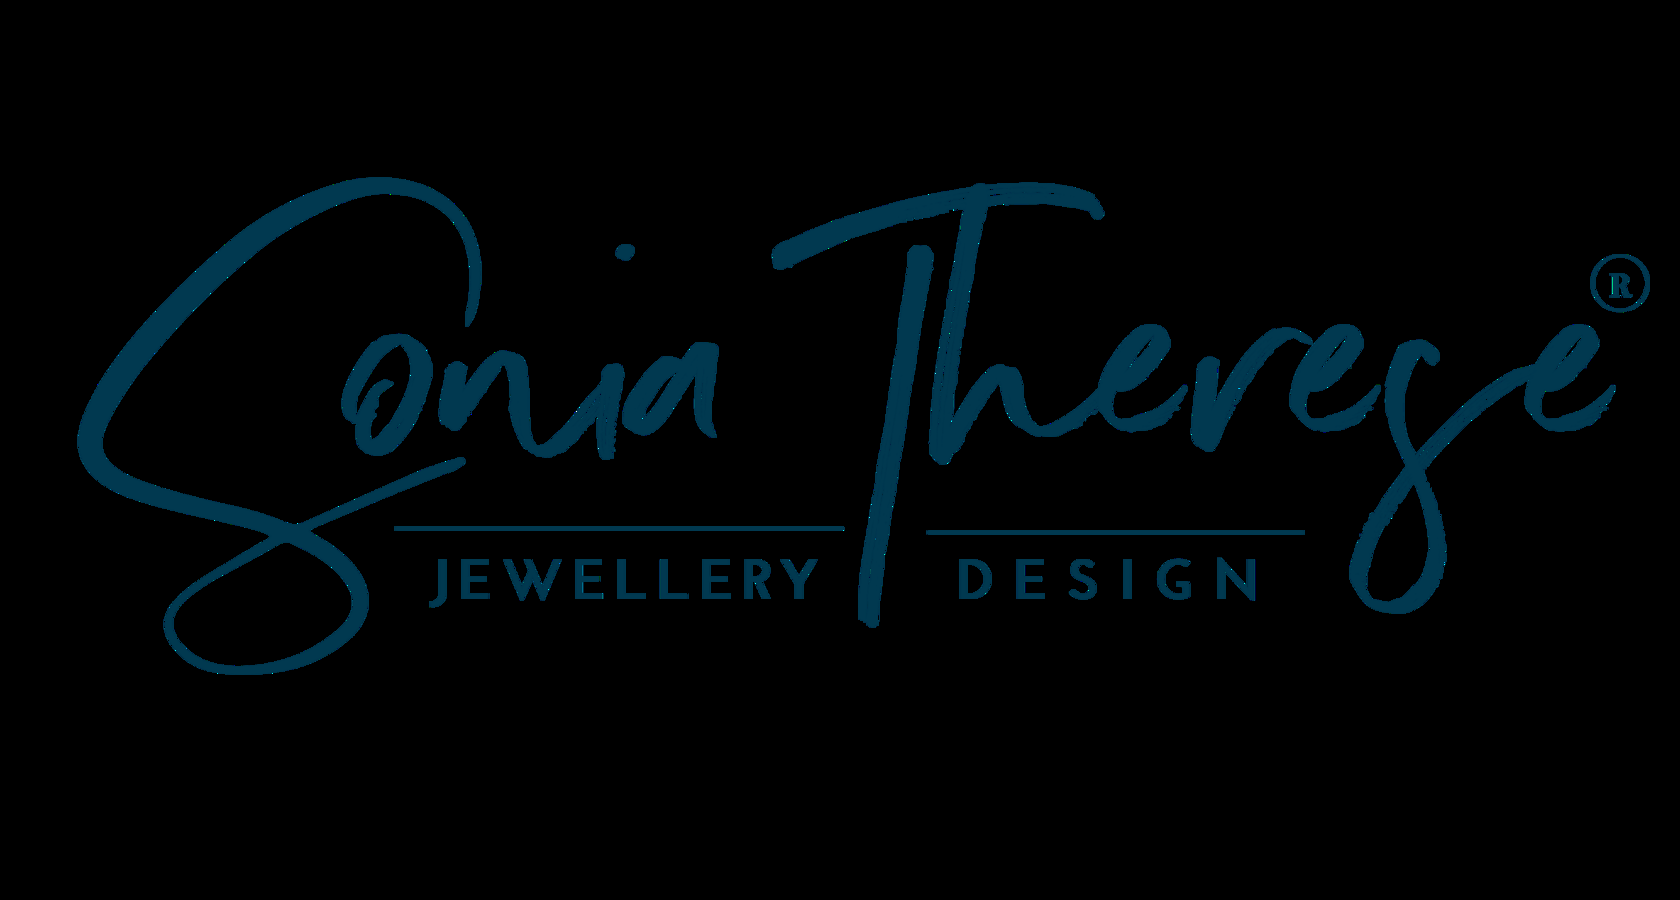 SONIA THERESE DESIGN